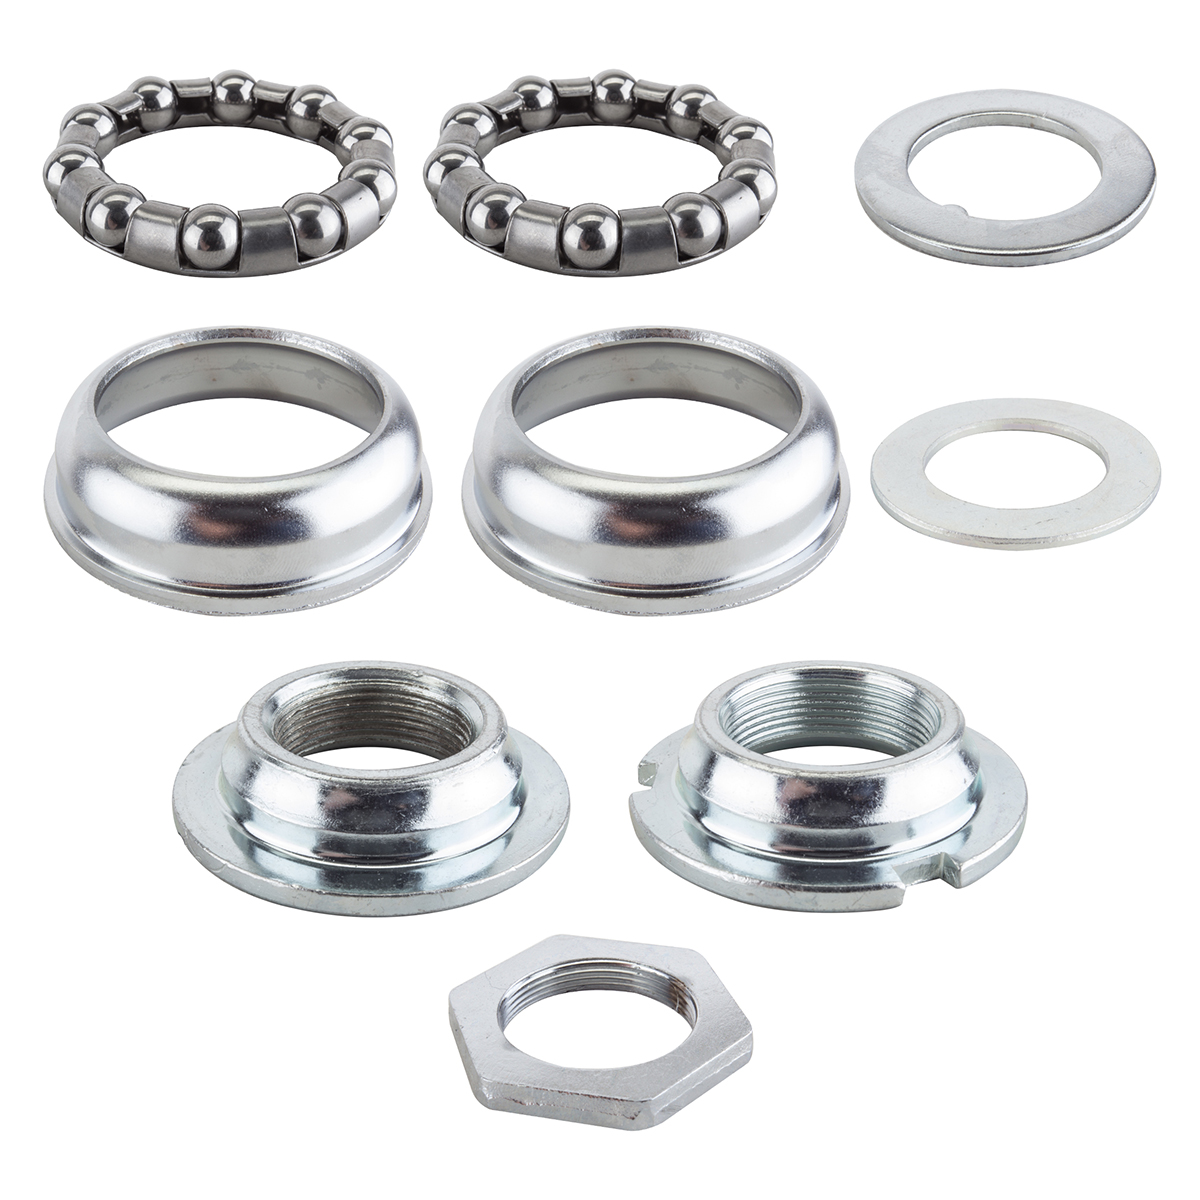 Sunlite 1 Piece 24tpi Silver 65mm Bottom Bracket Cup Set  with Bearings Included